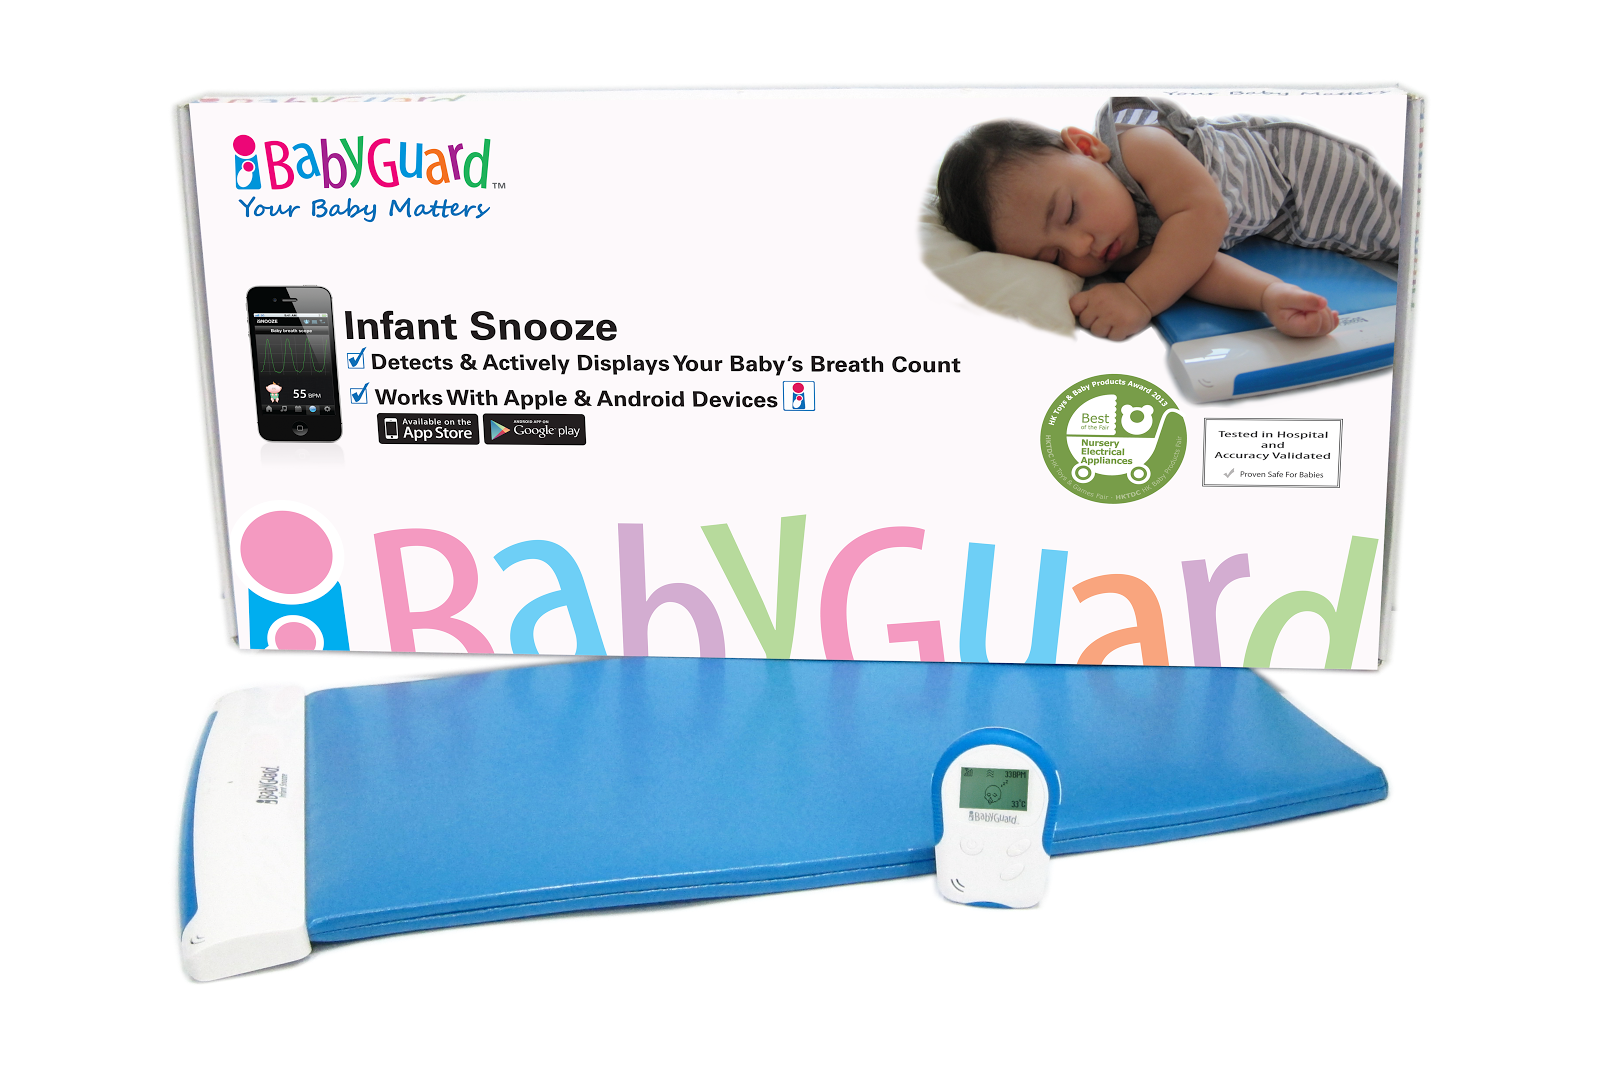 iBabyGuard Infant Snooze monitor